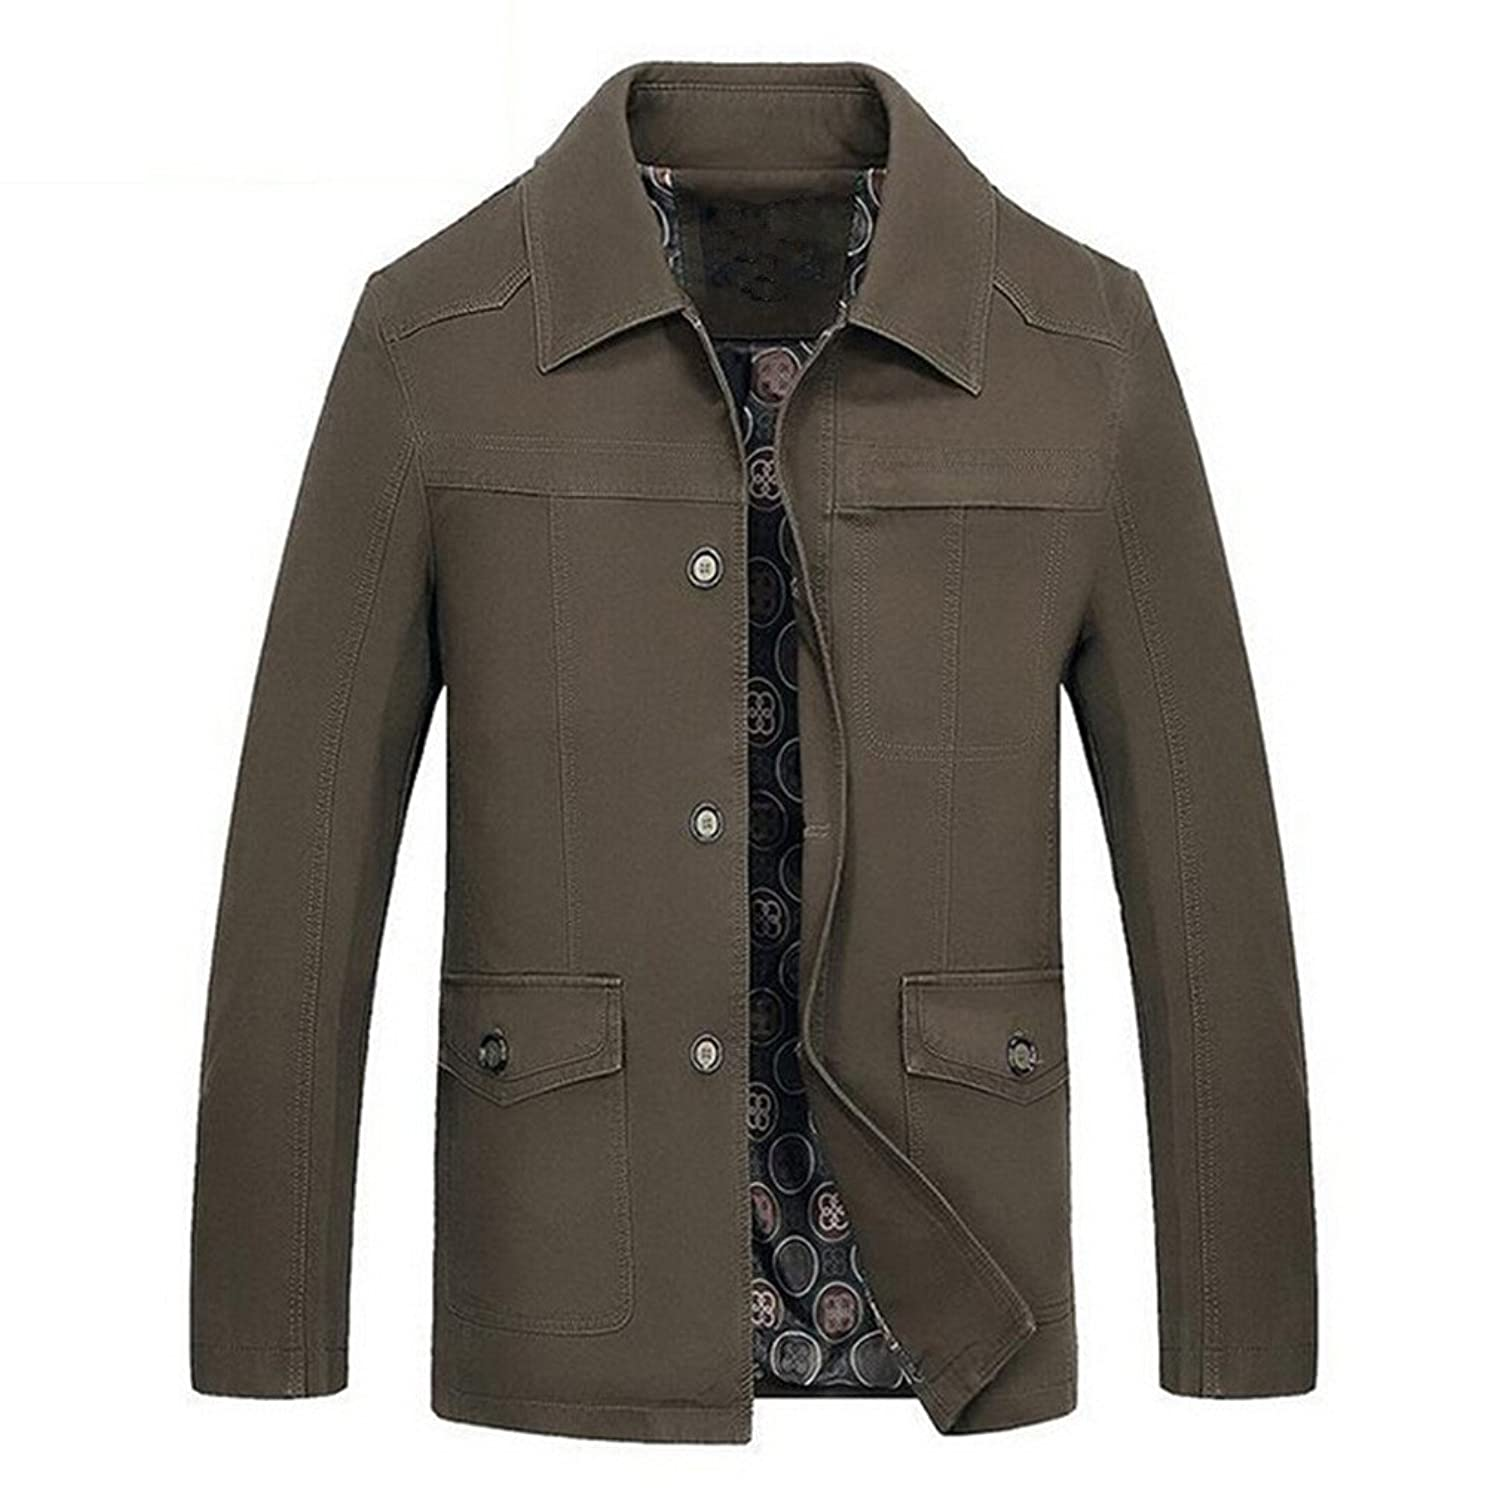 Men's Turn Down Collar Single Breasted Big&Tall Retro Trench Jackets